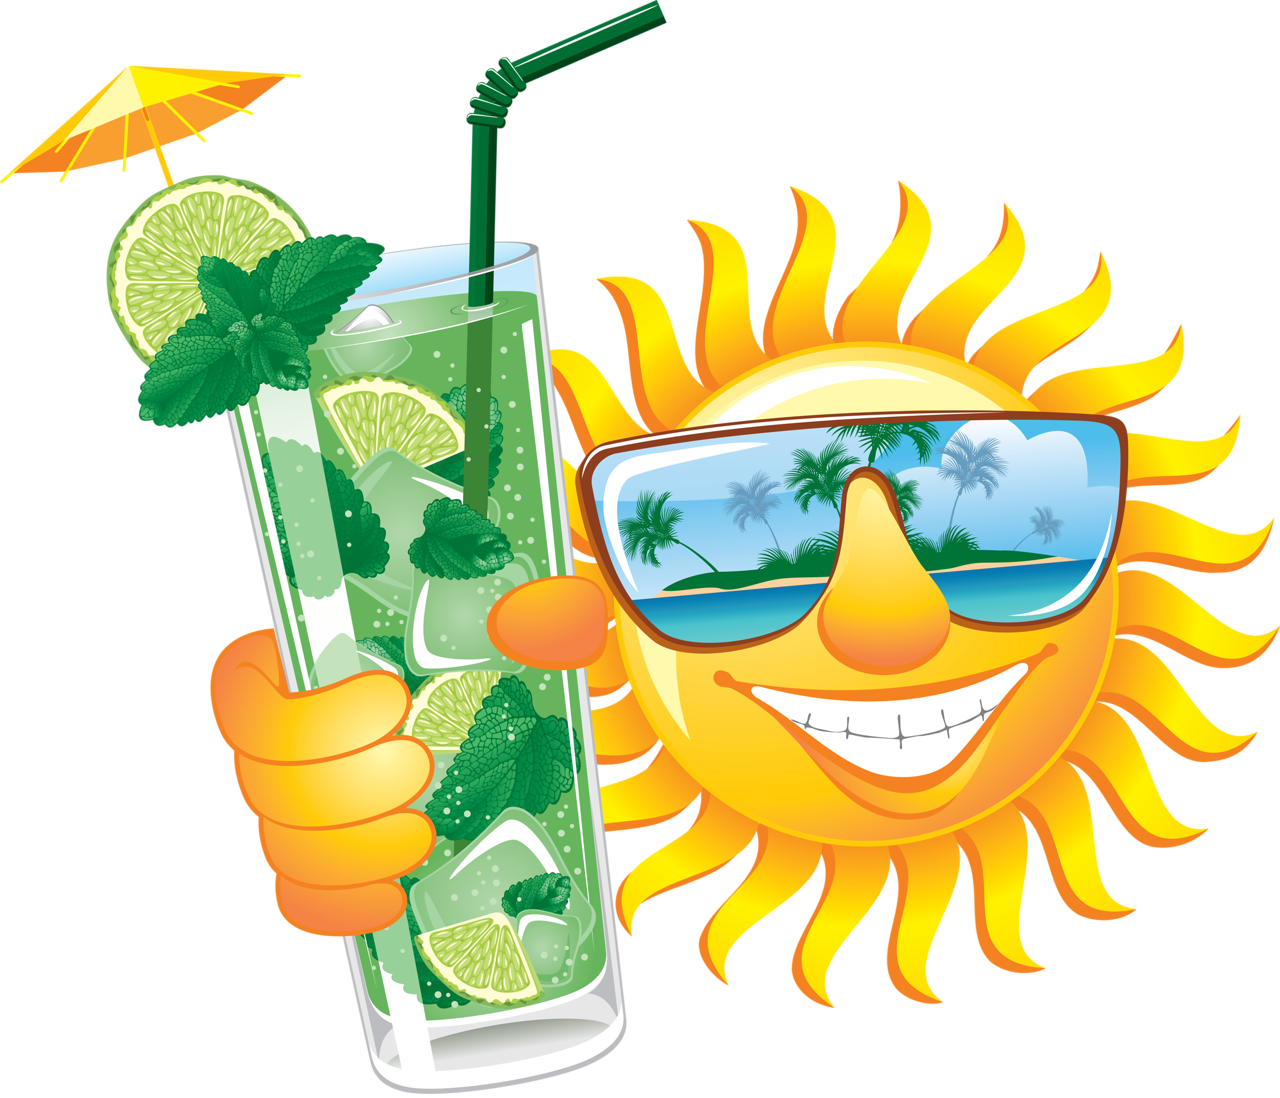 Sun relaxing with cocktail clipart png freeuse download 0_8baad_6ddc68a6_orig.png | Pinterest | Smileys and Emoticon png freeuse download